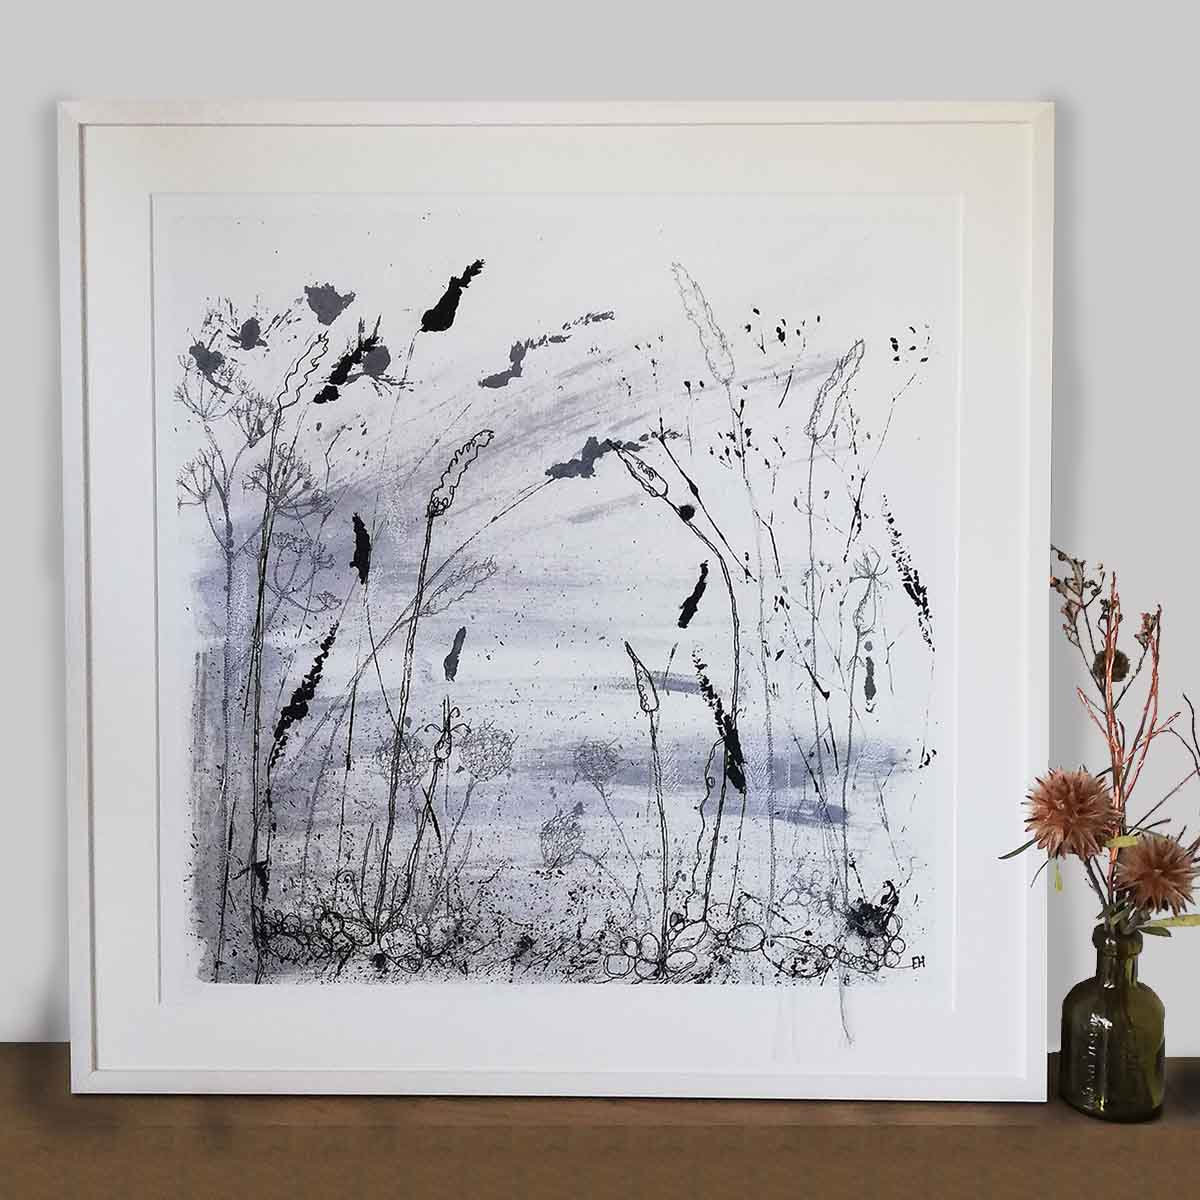 Autumn Shoreline Framed Print by Artist Ellie Hipkin